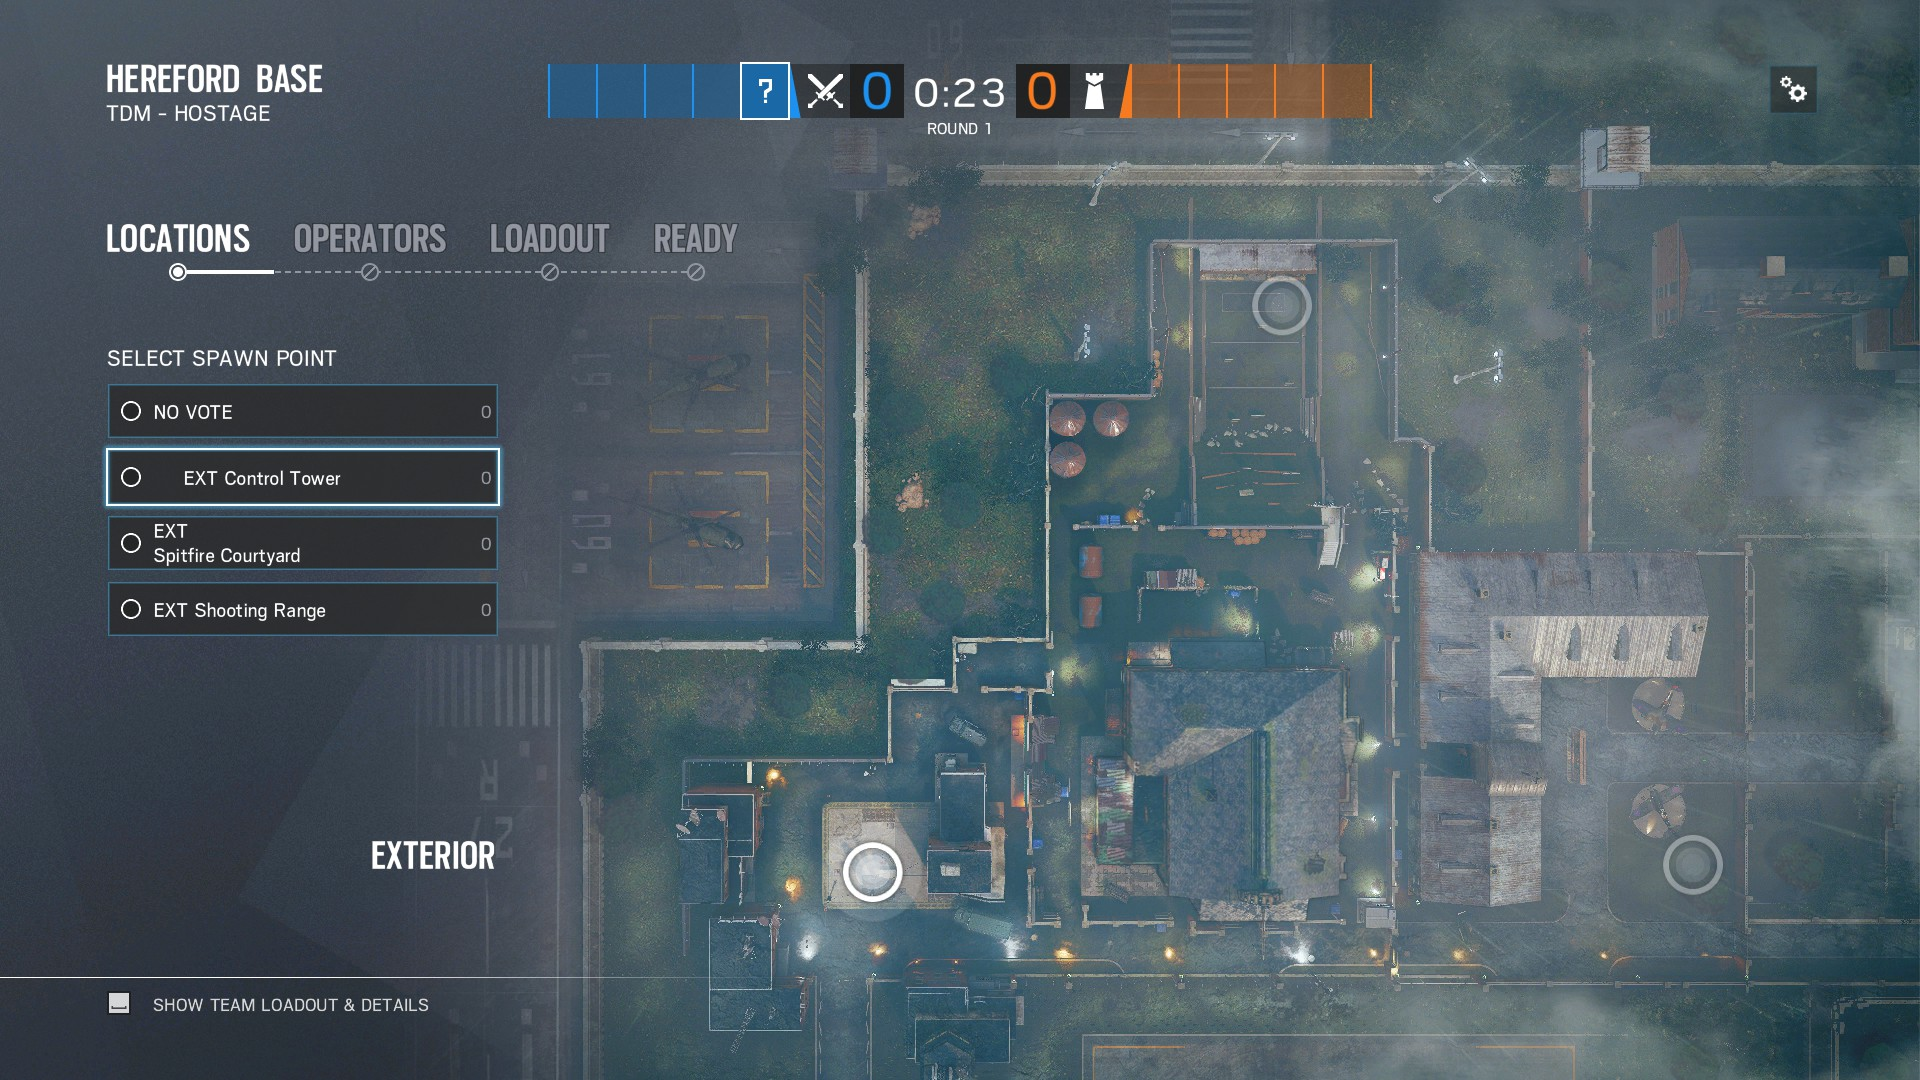 Attacking entry points for Hereford map in Rainbow Six Siege